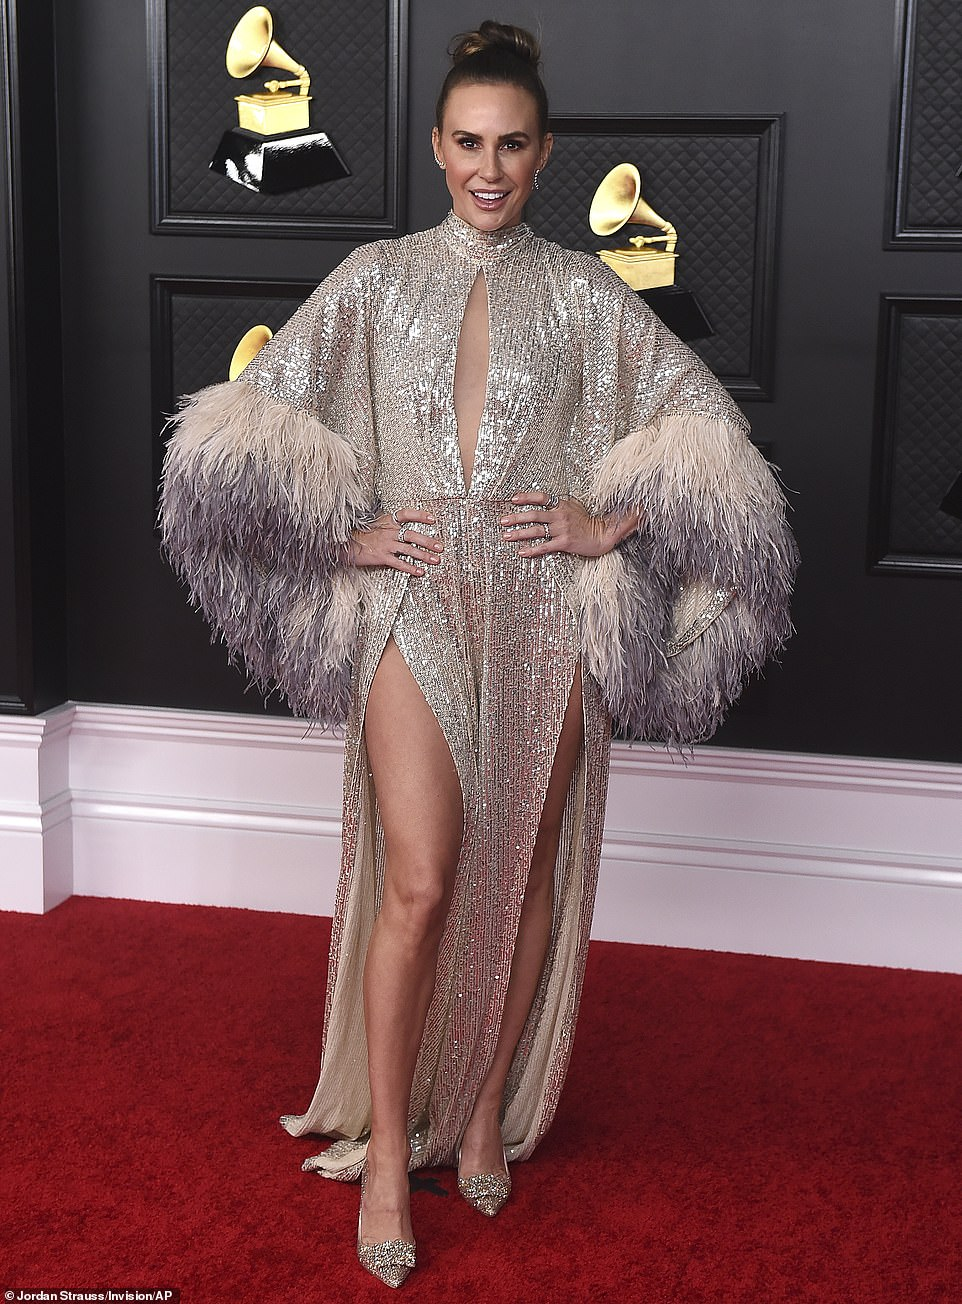 Is it a bird, is it a plane? Keltie Knight's shimmering frock would have been stunning had it not been for the over-the-top feather embellishments on the sleeves, which left her looking a little bit like Big Bird